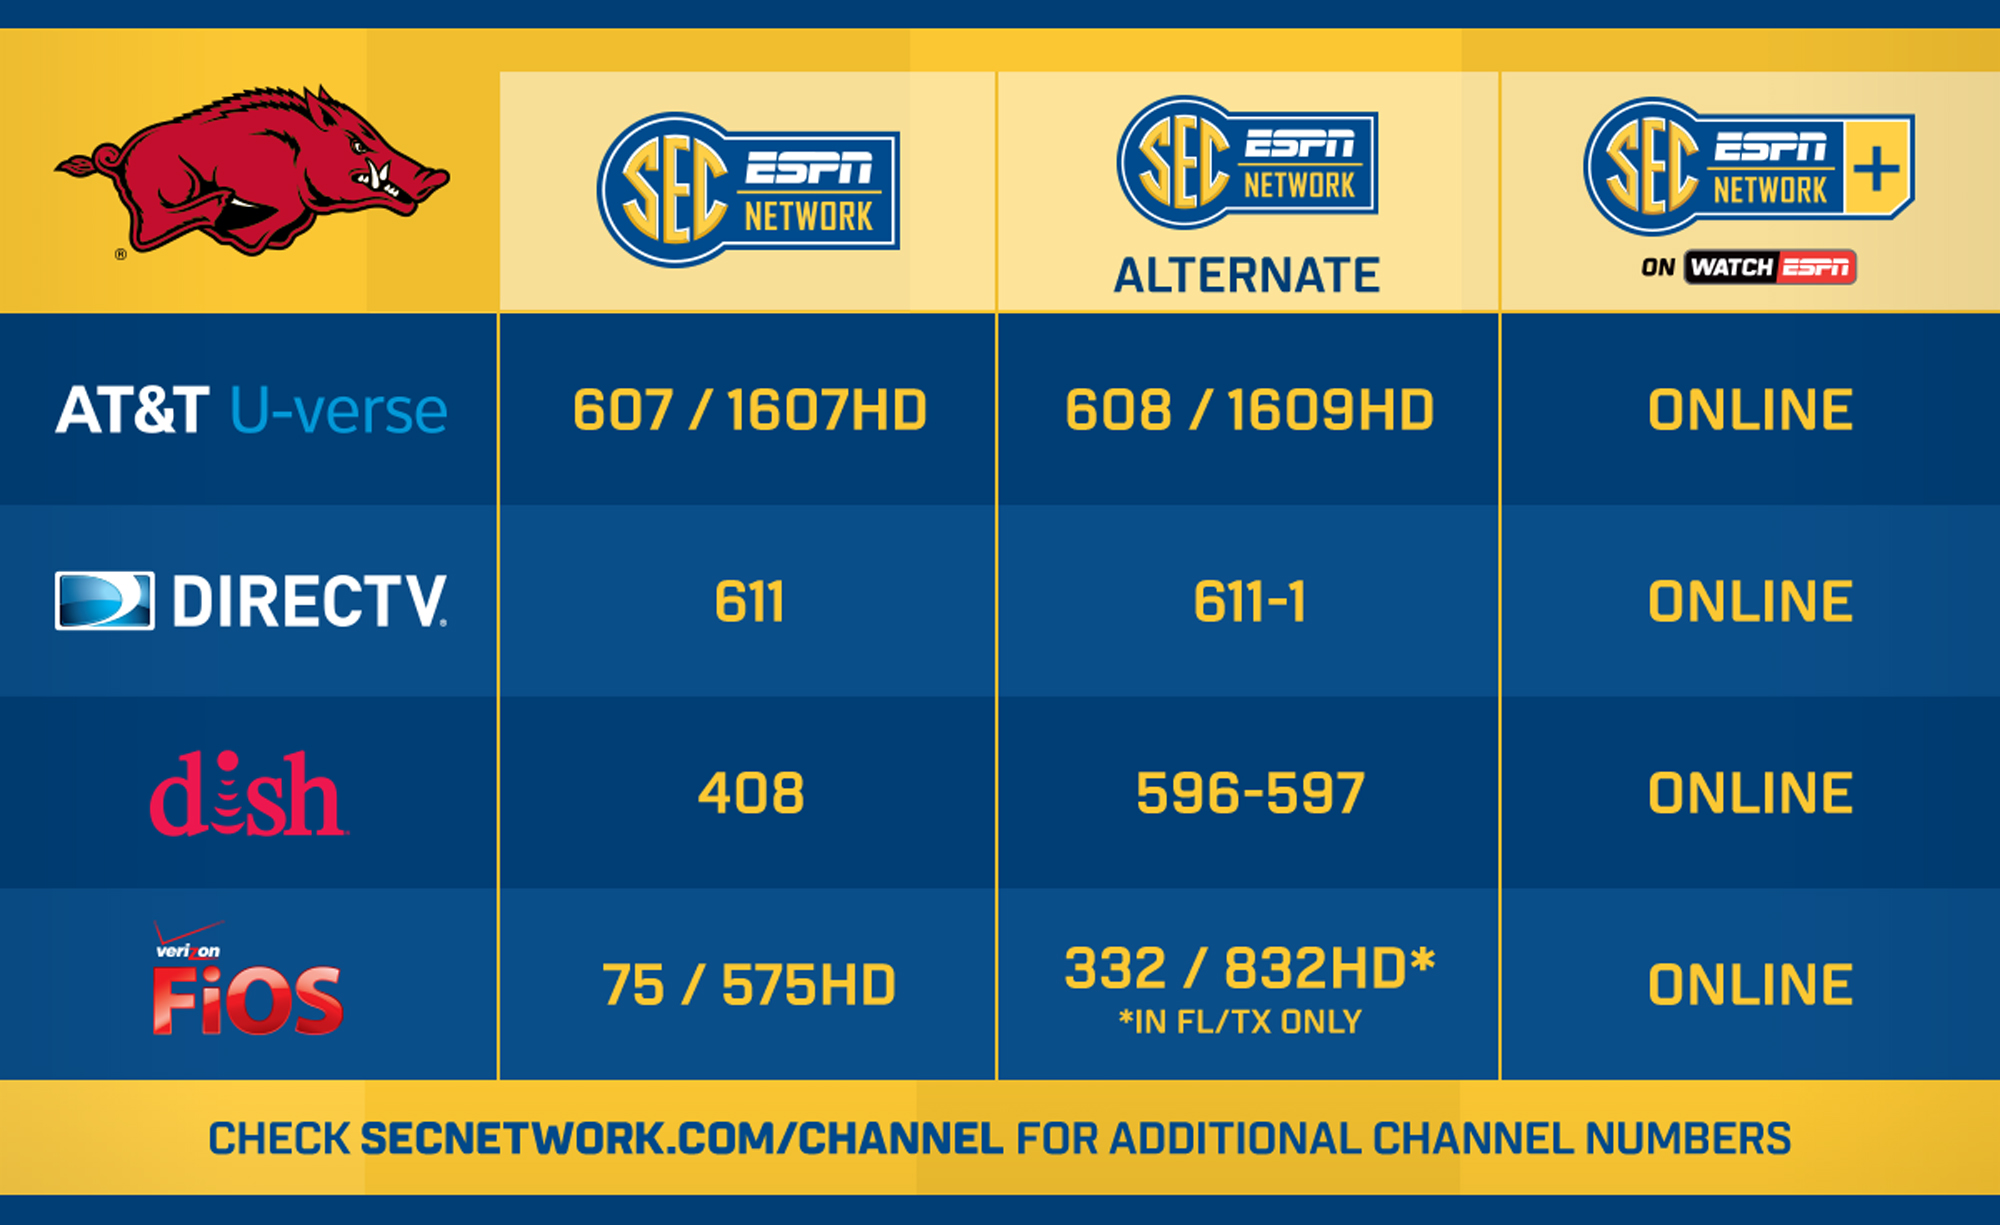 Verizon fios nfl network channel number - Sec Network